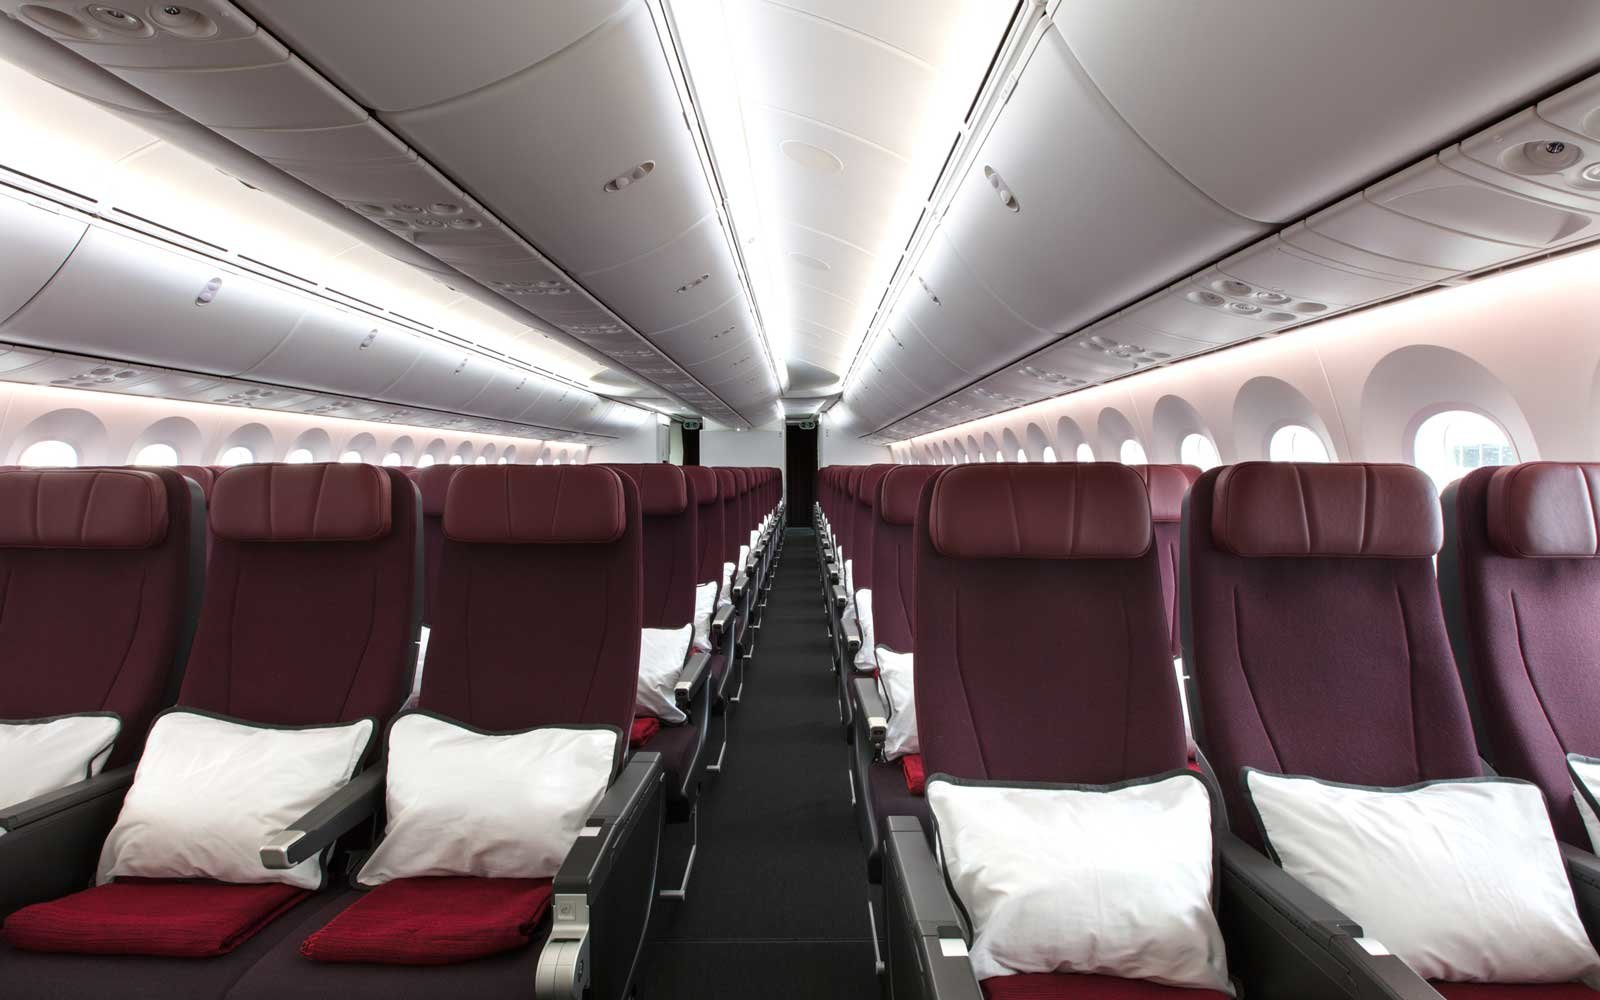 17 Ways Qantas Is Going to Make a 17-hour Flight Comfortable